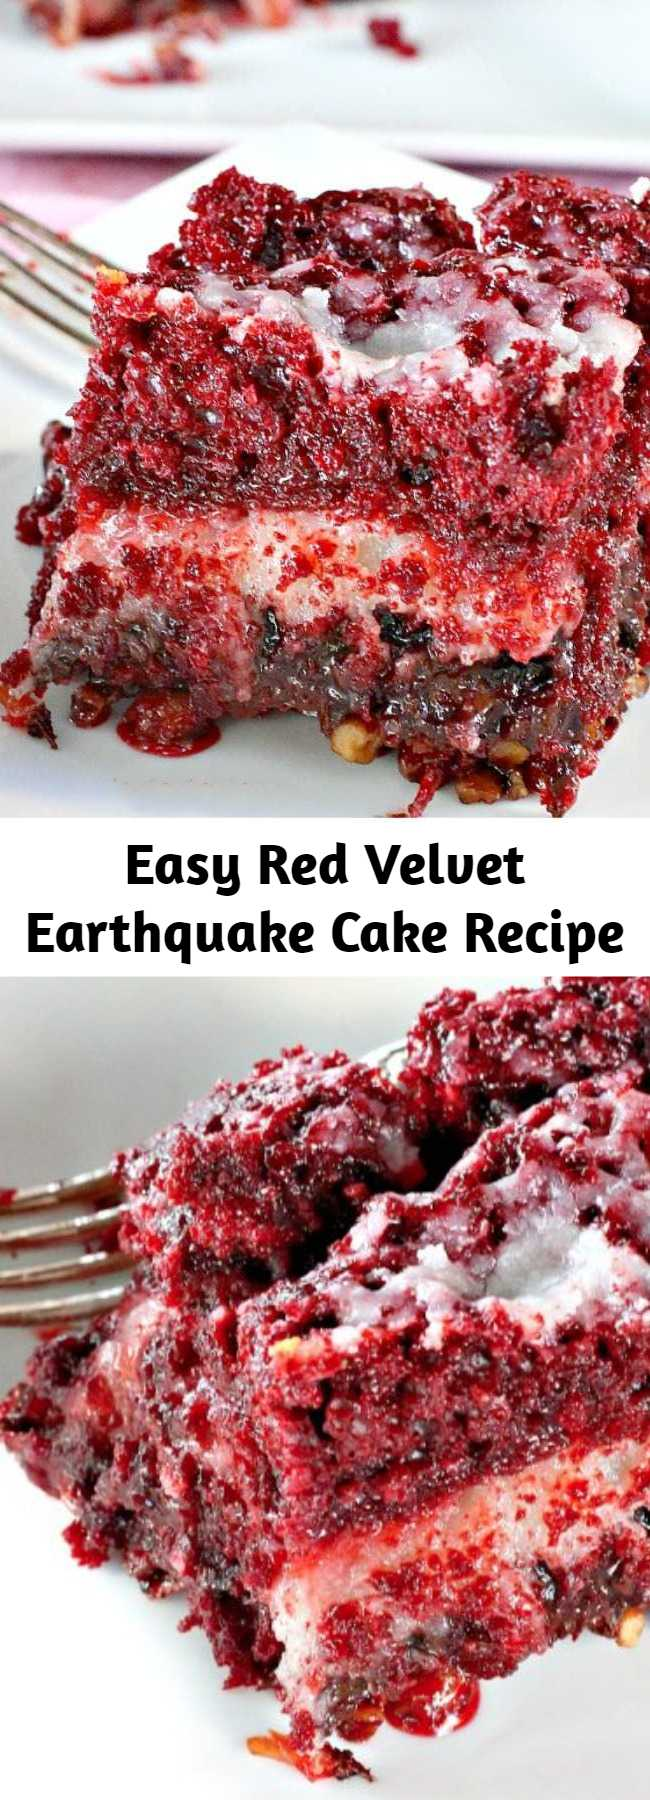 Easy Red Velvet Earthquake Cake Recipe - This delectable cake recipe calls for a Red Velvet cake batter and a cheesecake layer over top of pecans, coconut and chocolate chips. While baking the cake undergoes a seismic shift which explains its name. Fabulous for Christmas and Valentine's Day or other holiday baking.